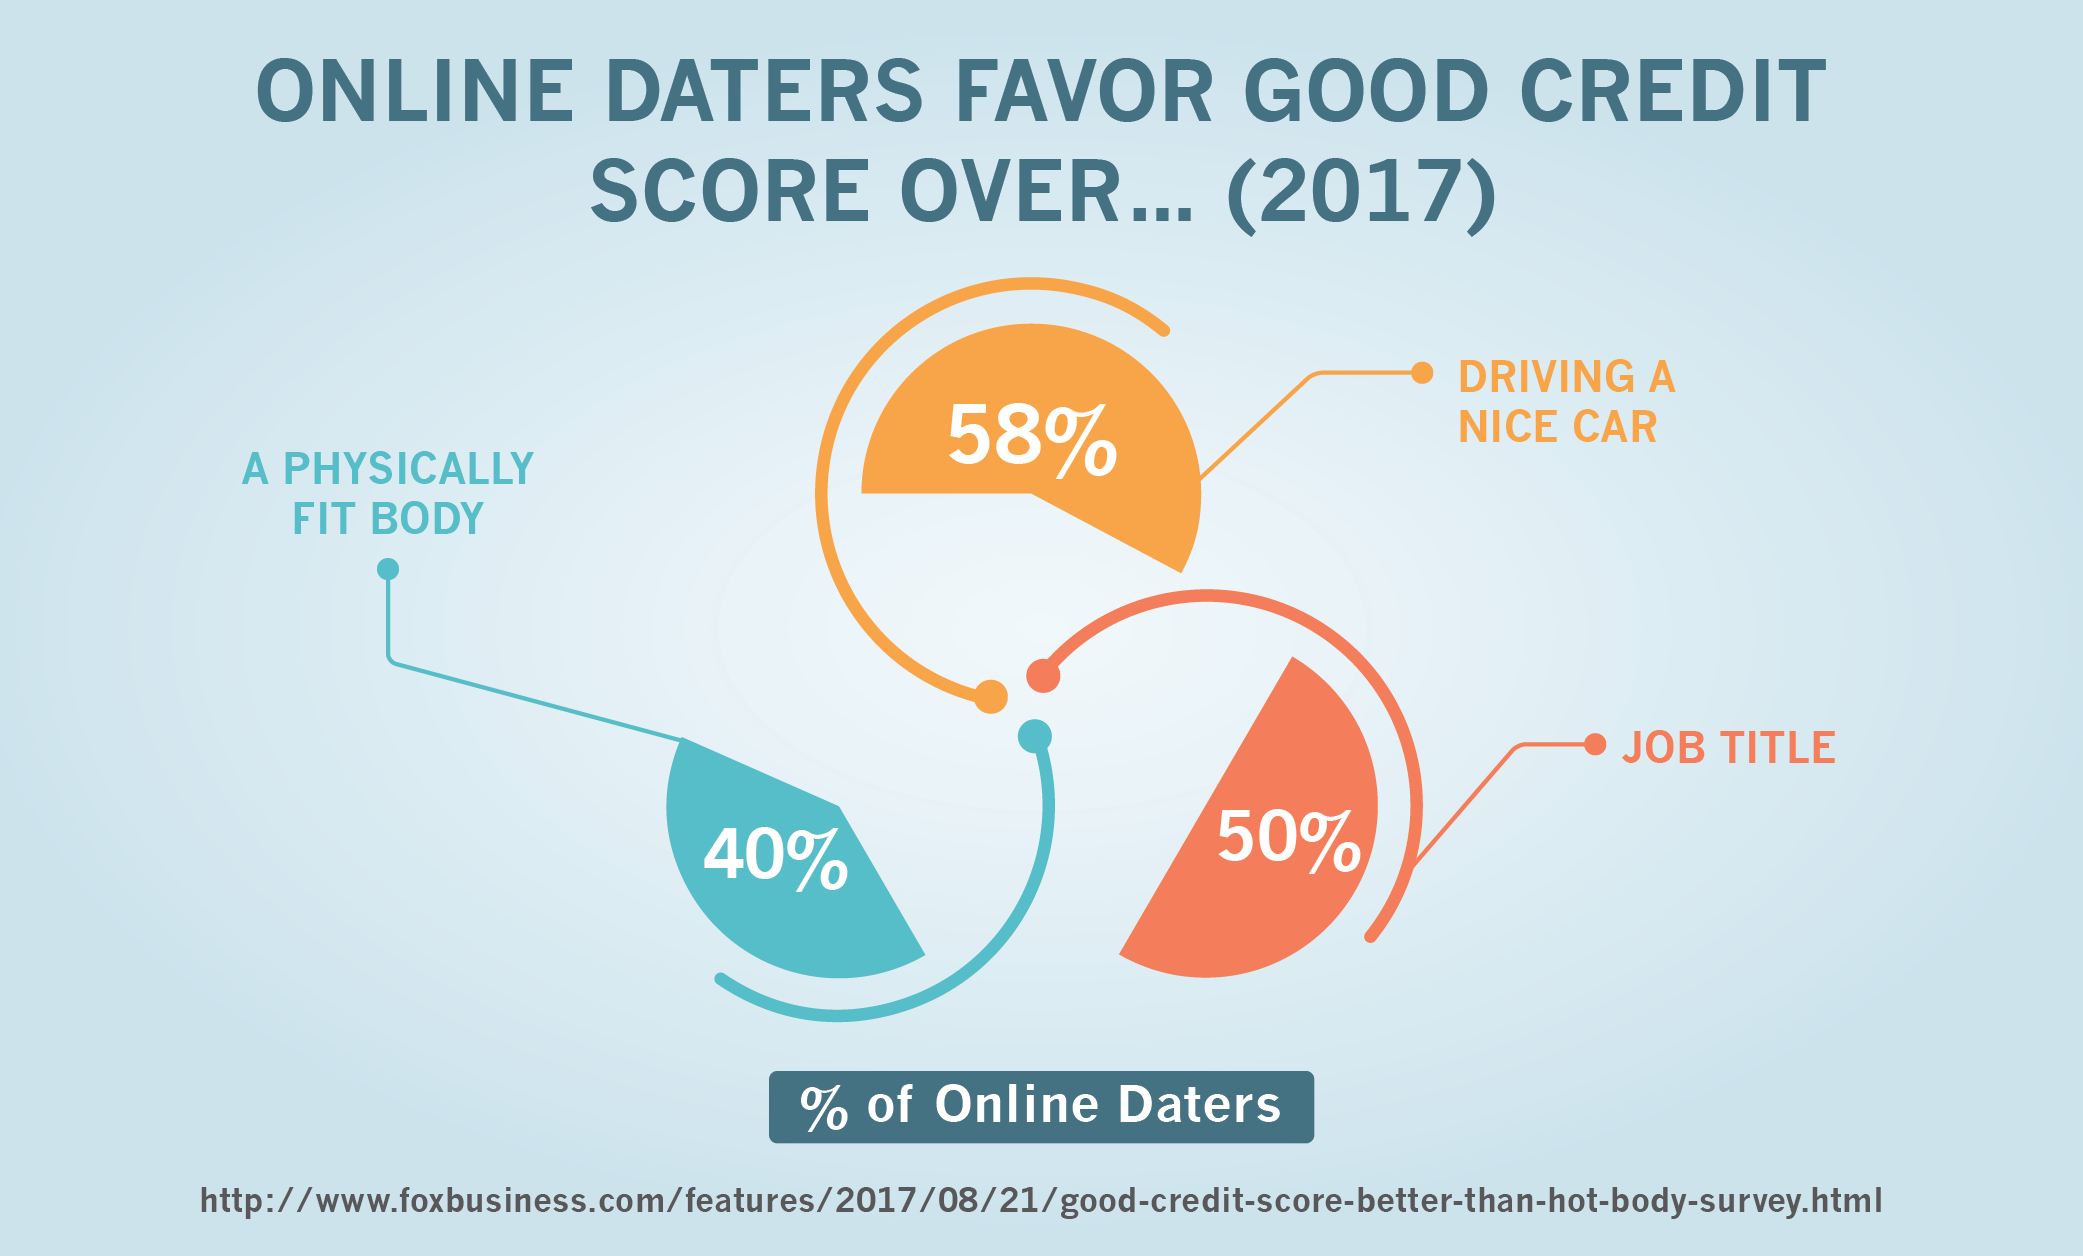 Online Daters Favor Good Credit Score Over… (2017)